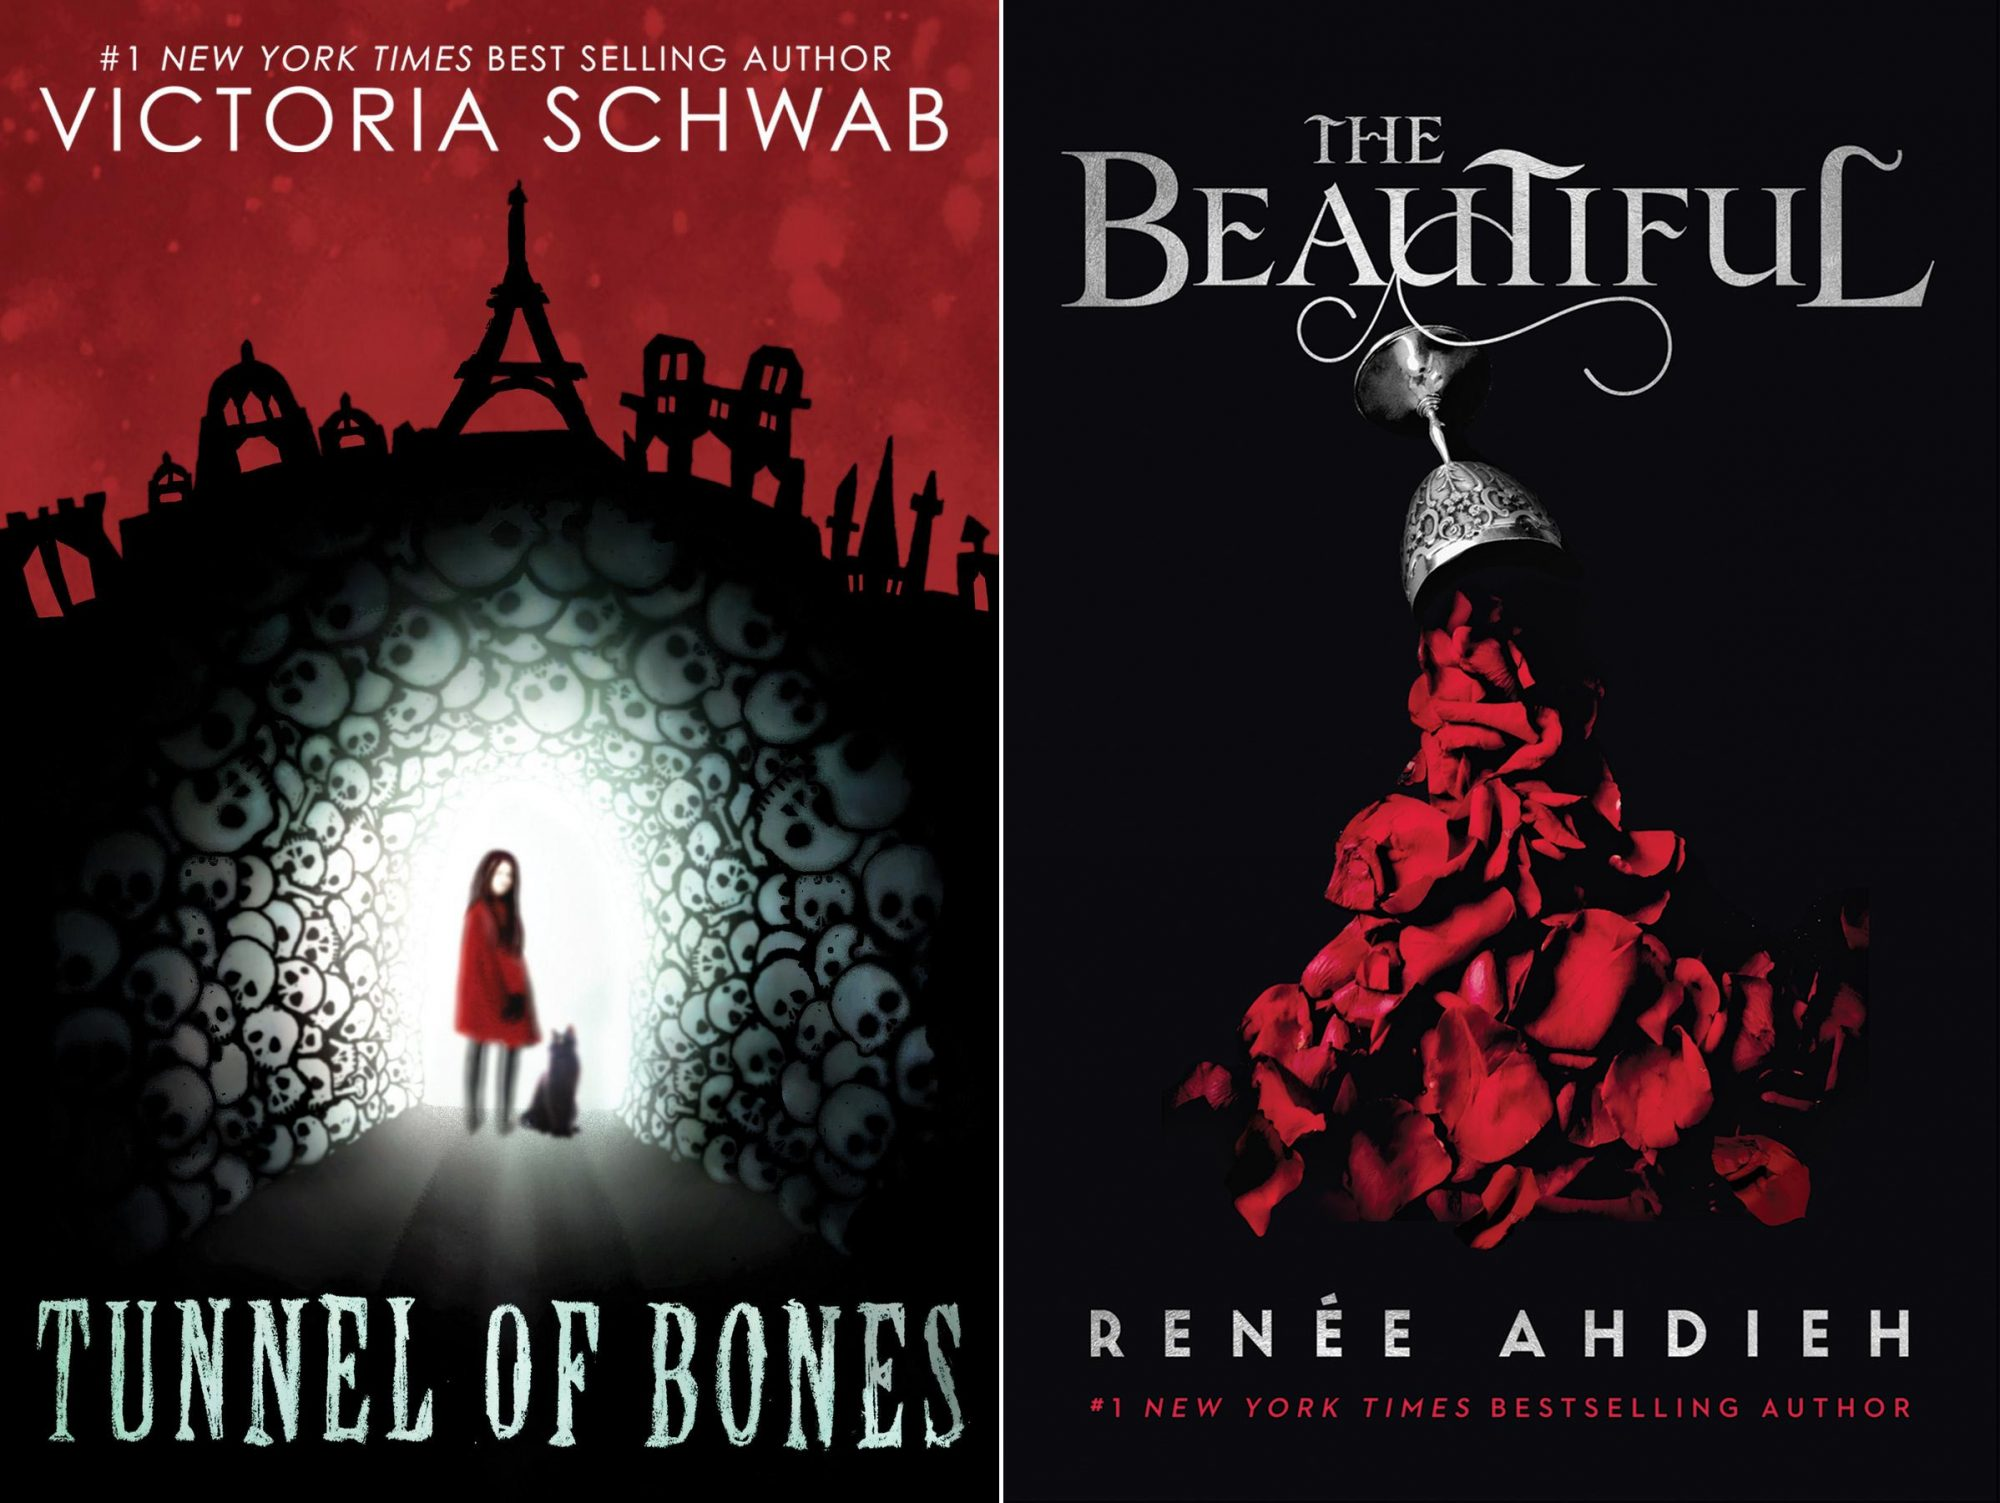 Tunnel of Bones by Victoria Schwab CR: Scholastic The Beautiful by Renee Ahdieh CR: Penguin Random House